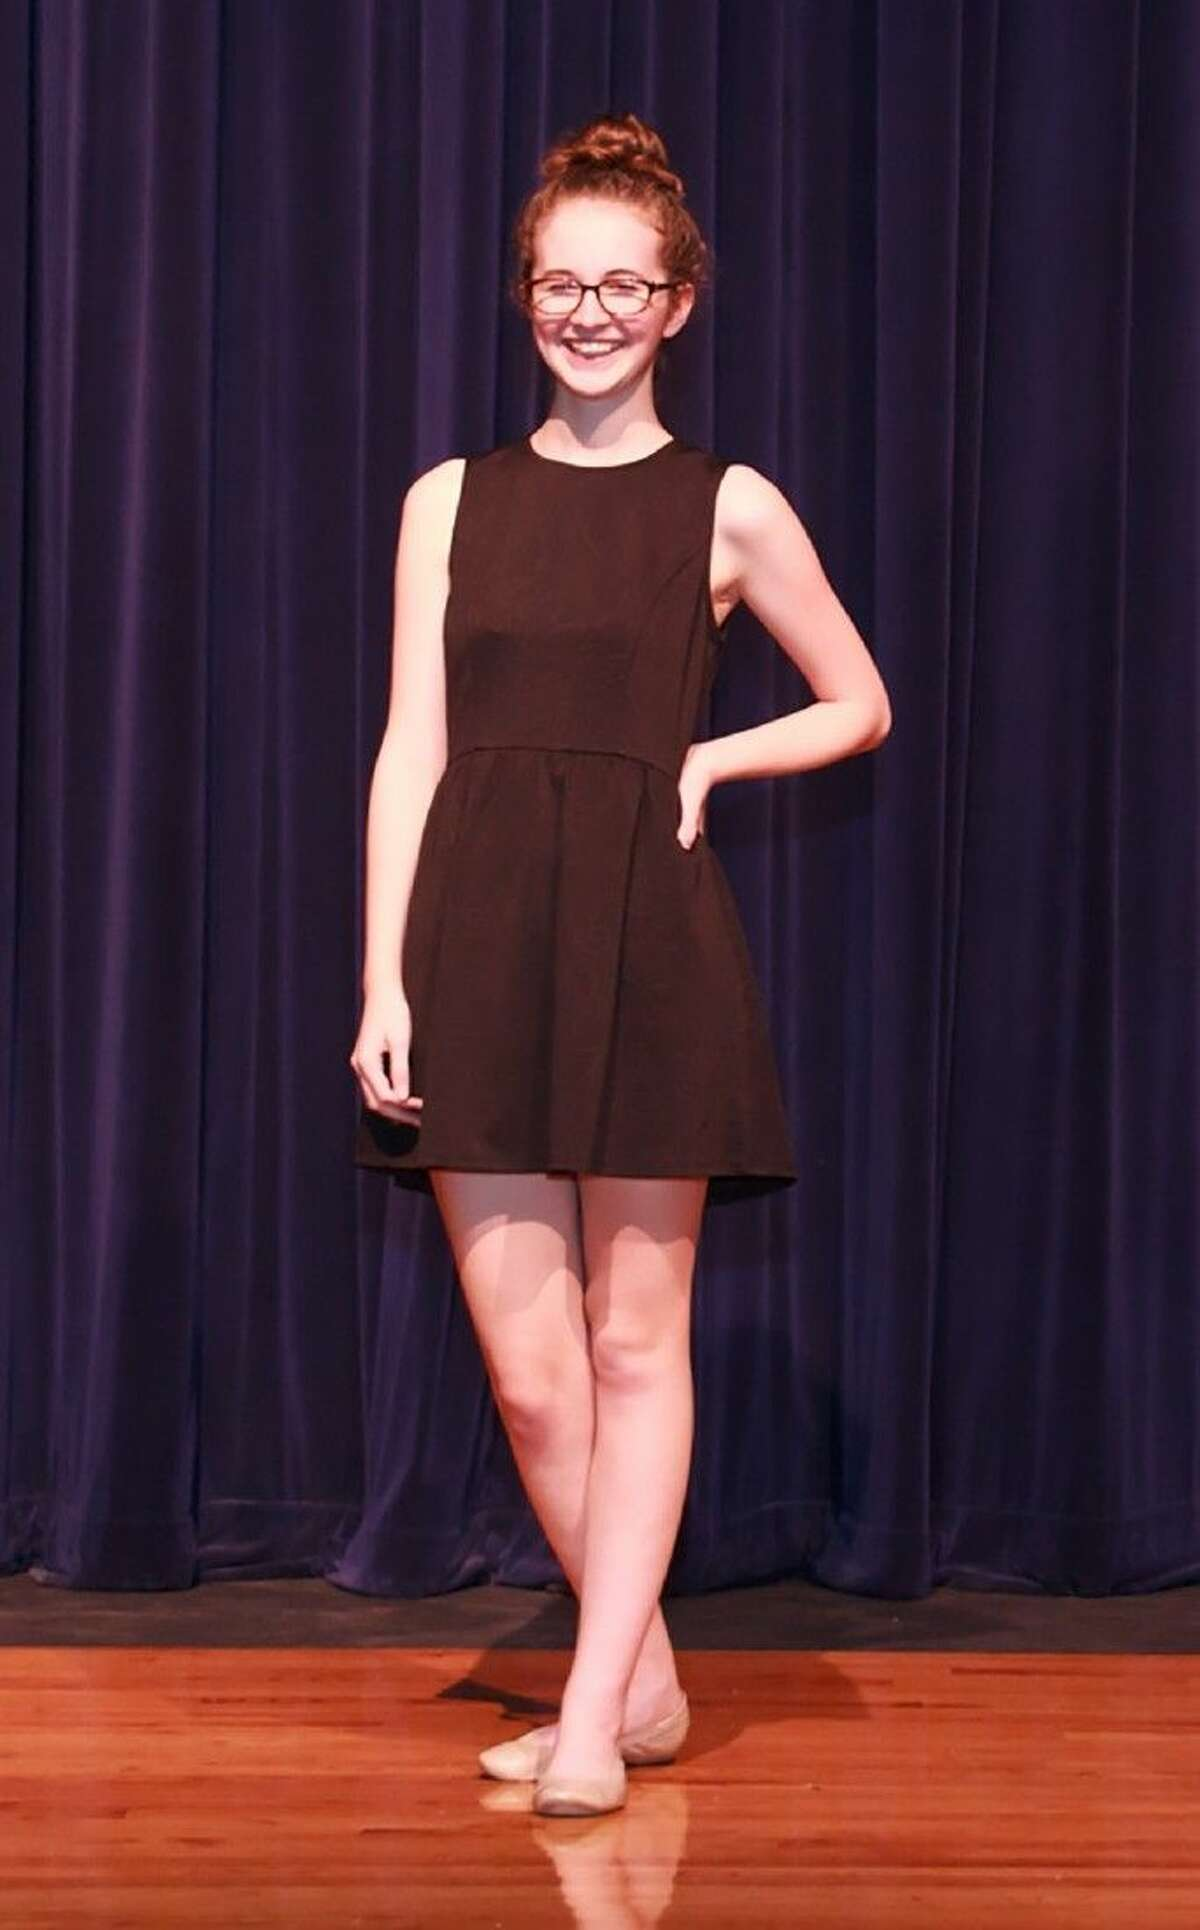 Cypress Ranch High School senior Cat Reynolds has been named the winner of the 2014 Texas Thespians Musicalworks competition.